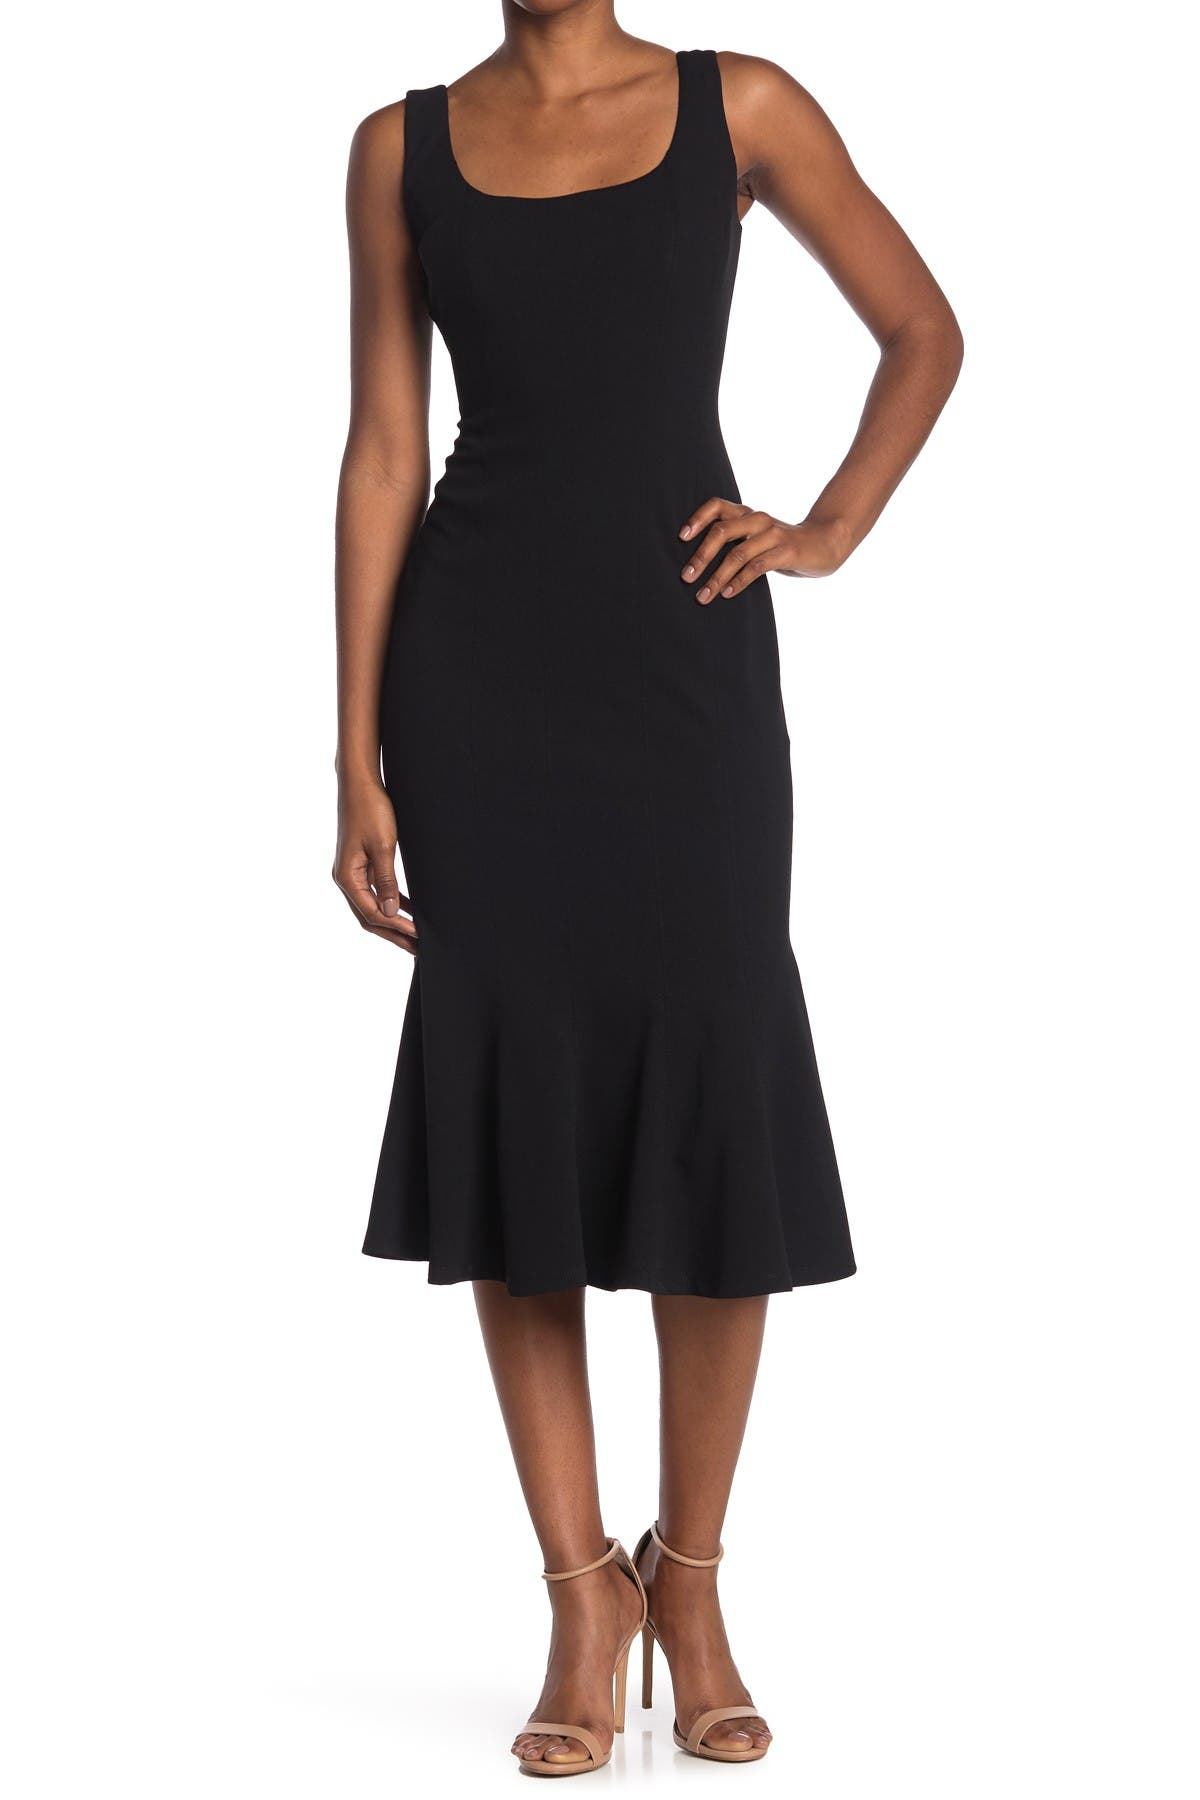 Image of Maggy London Square Neck Mermaid Dress